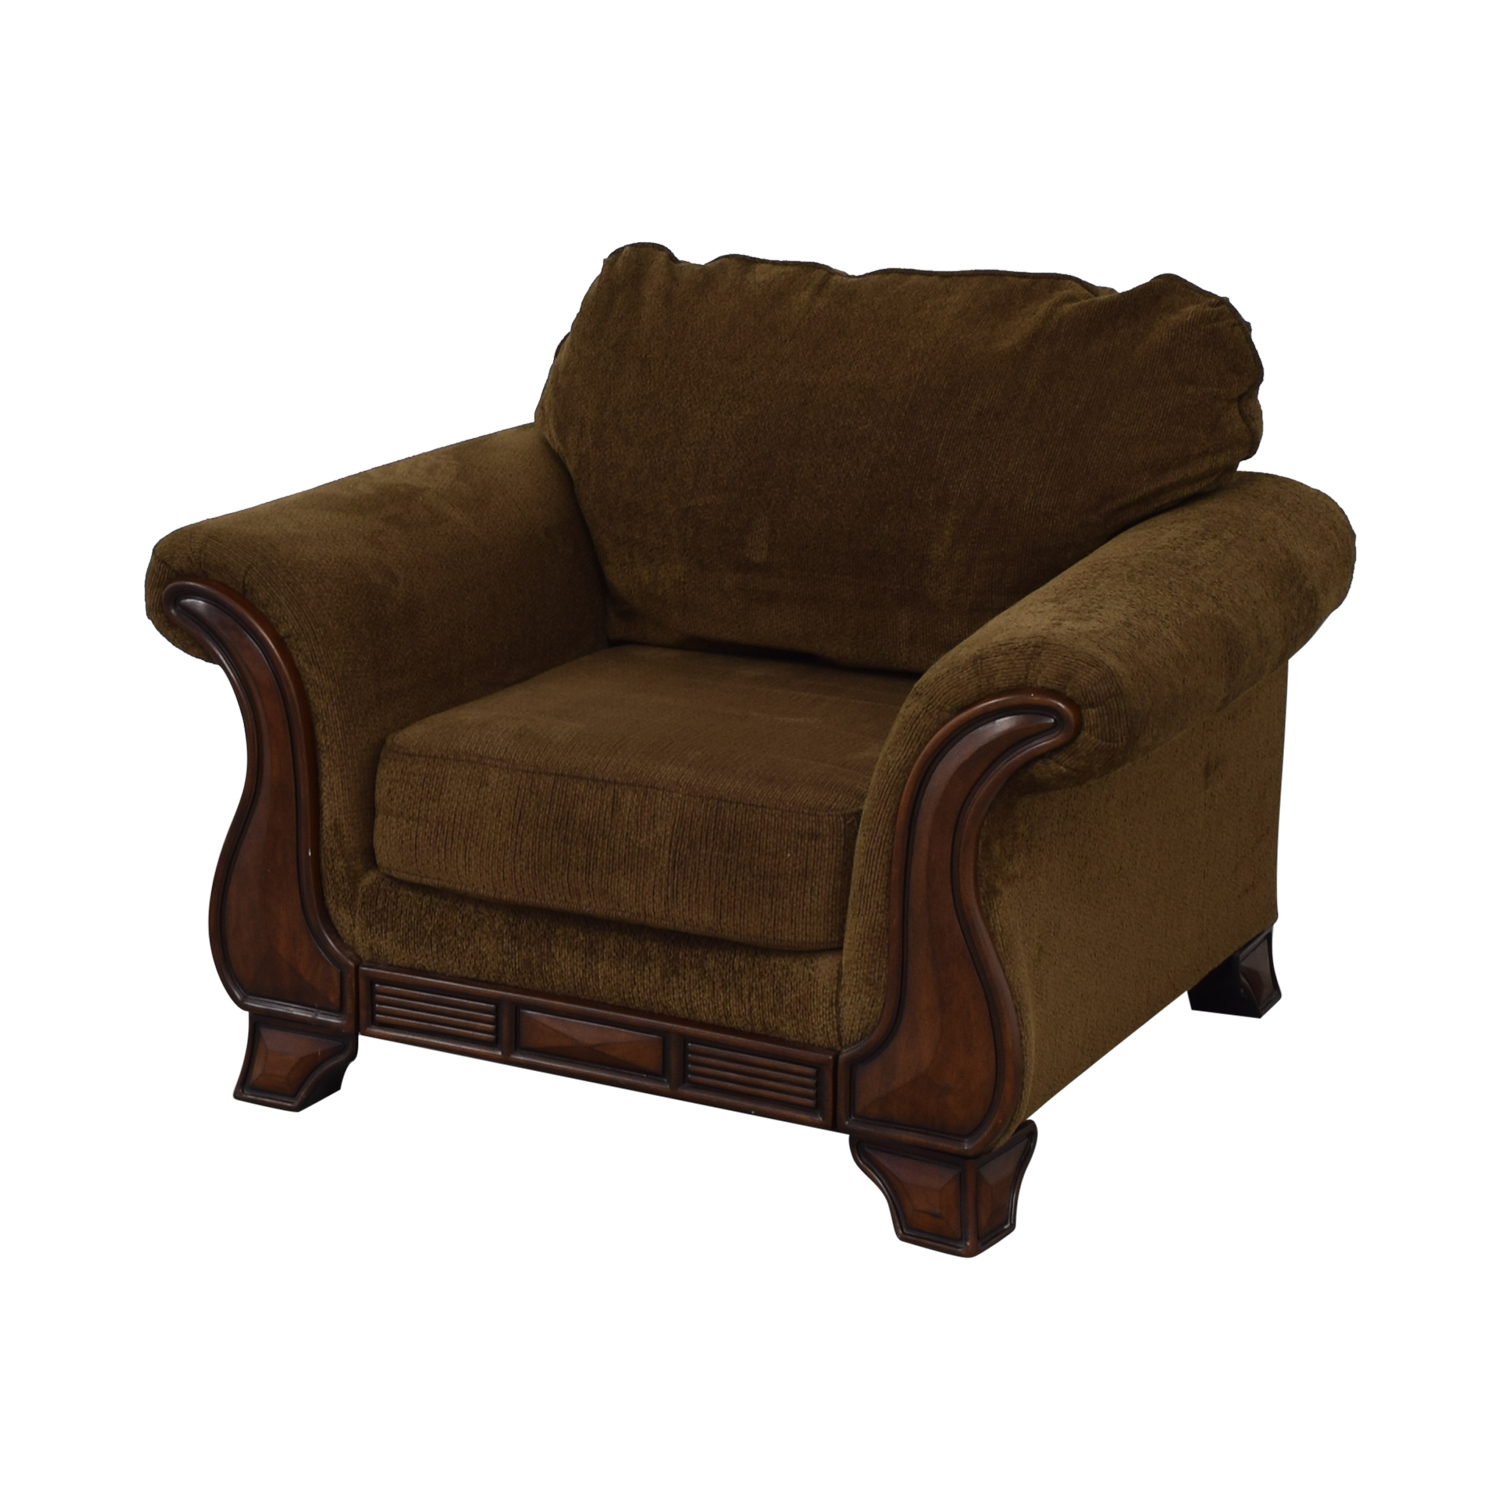 buy Jennifer Convertible Jennifer Convertible Montgomery Brown Accent Chair online